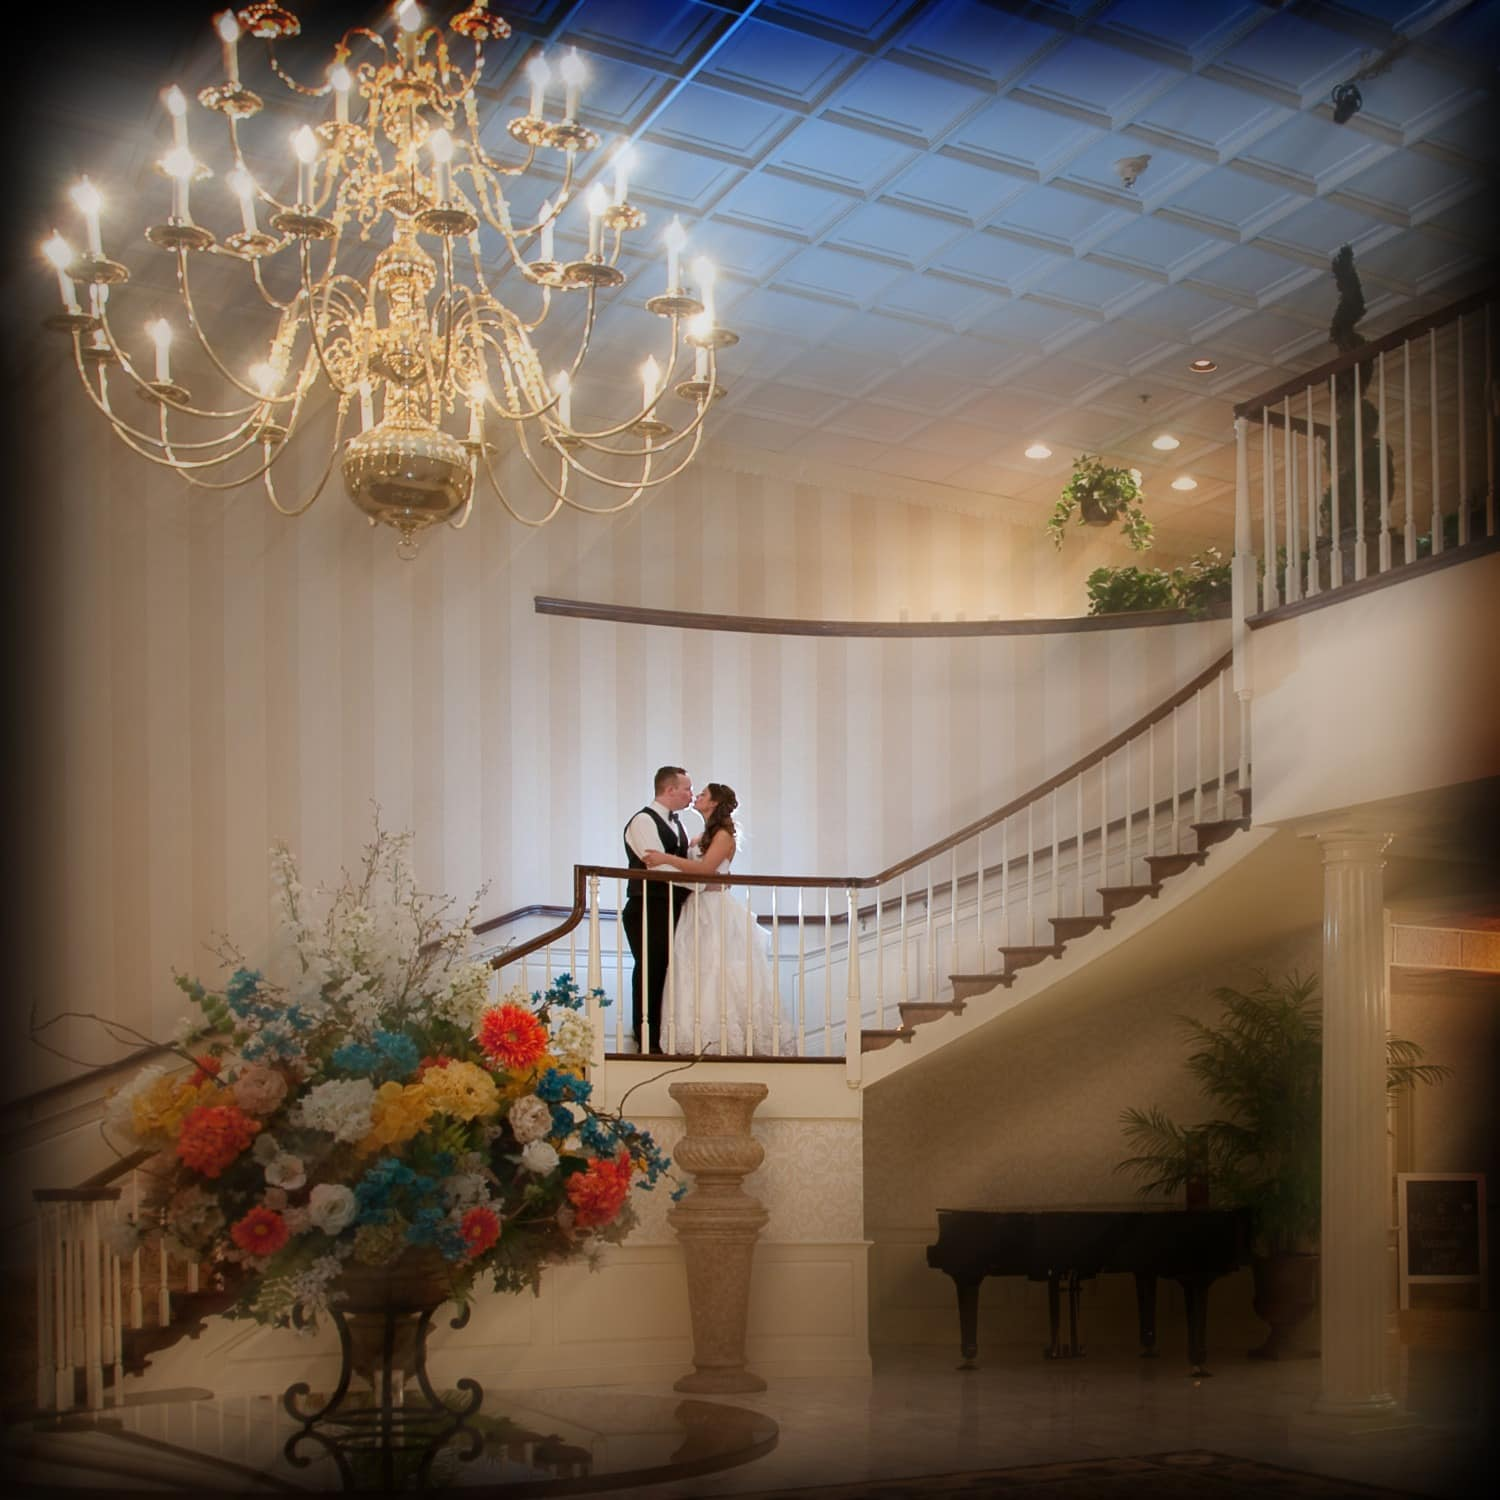 man and wife dancing with chandelier